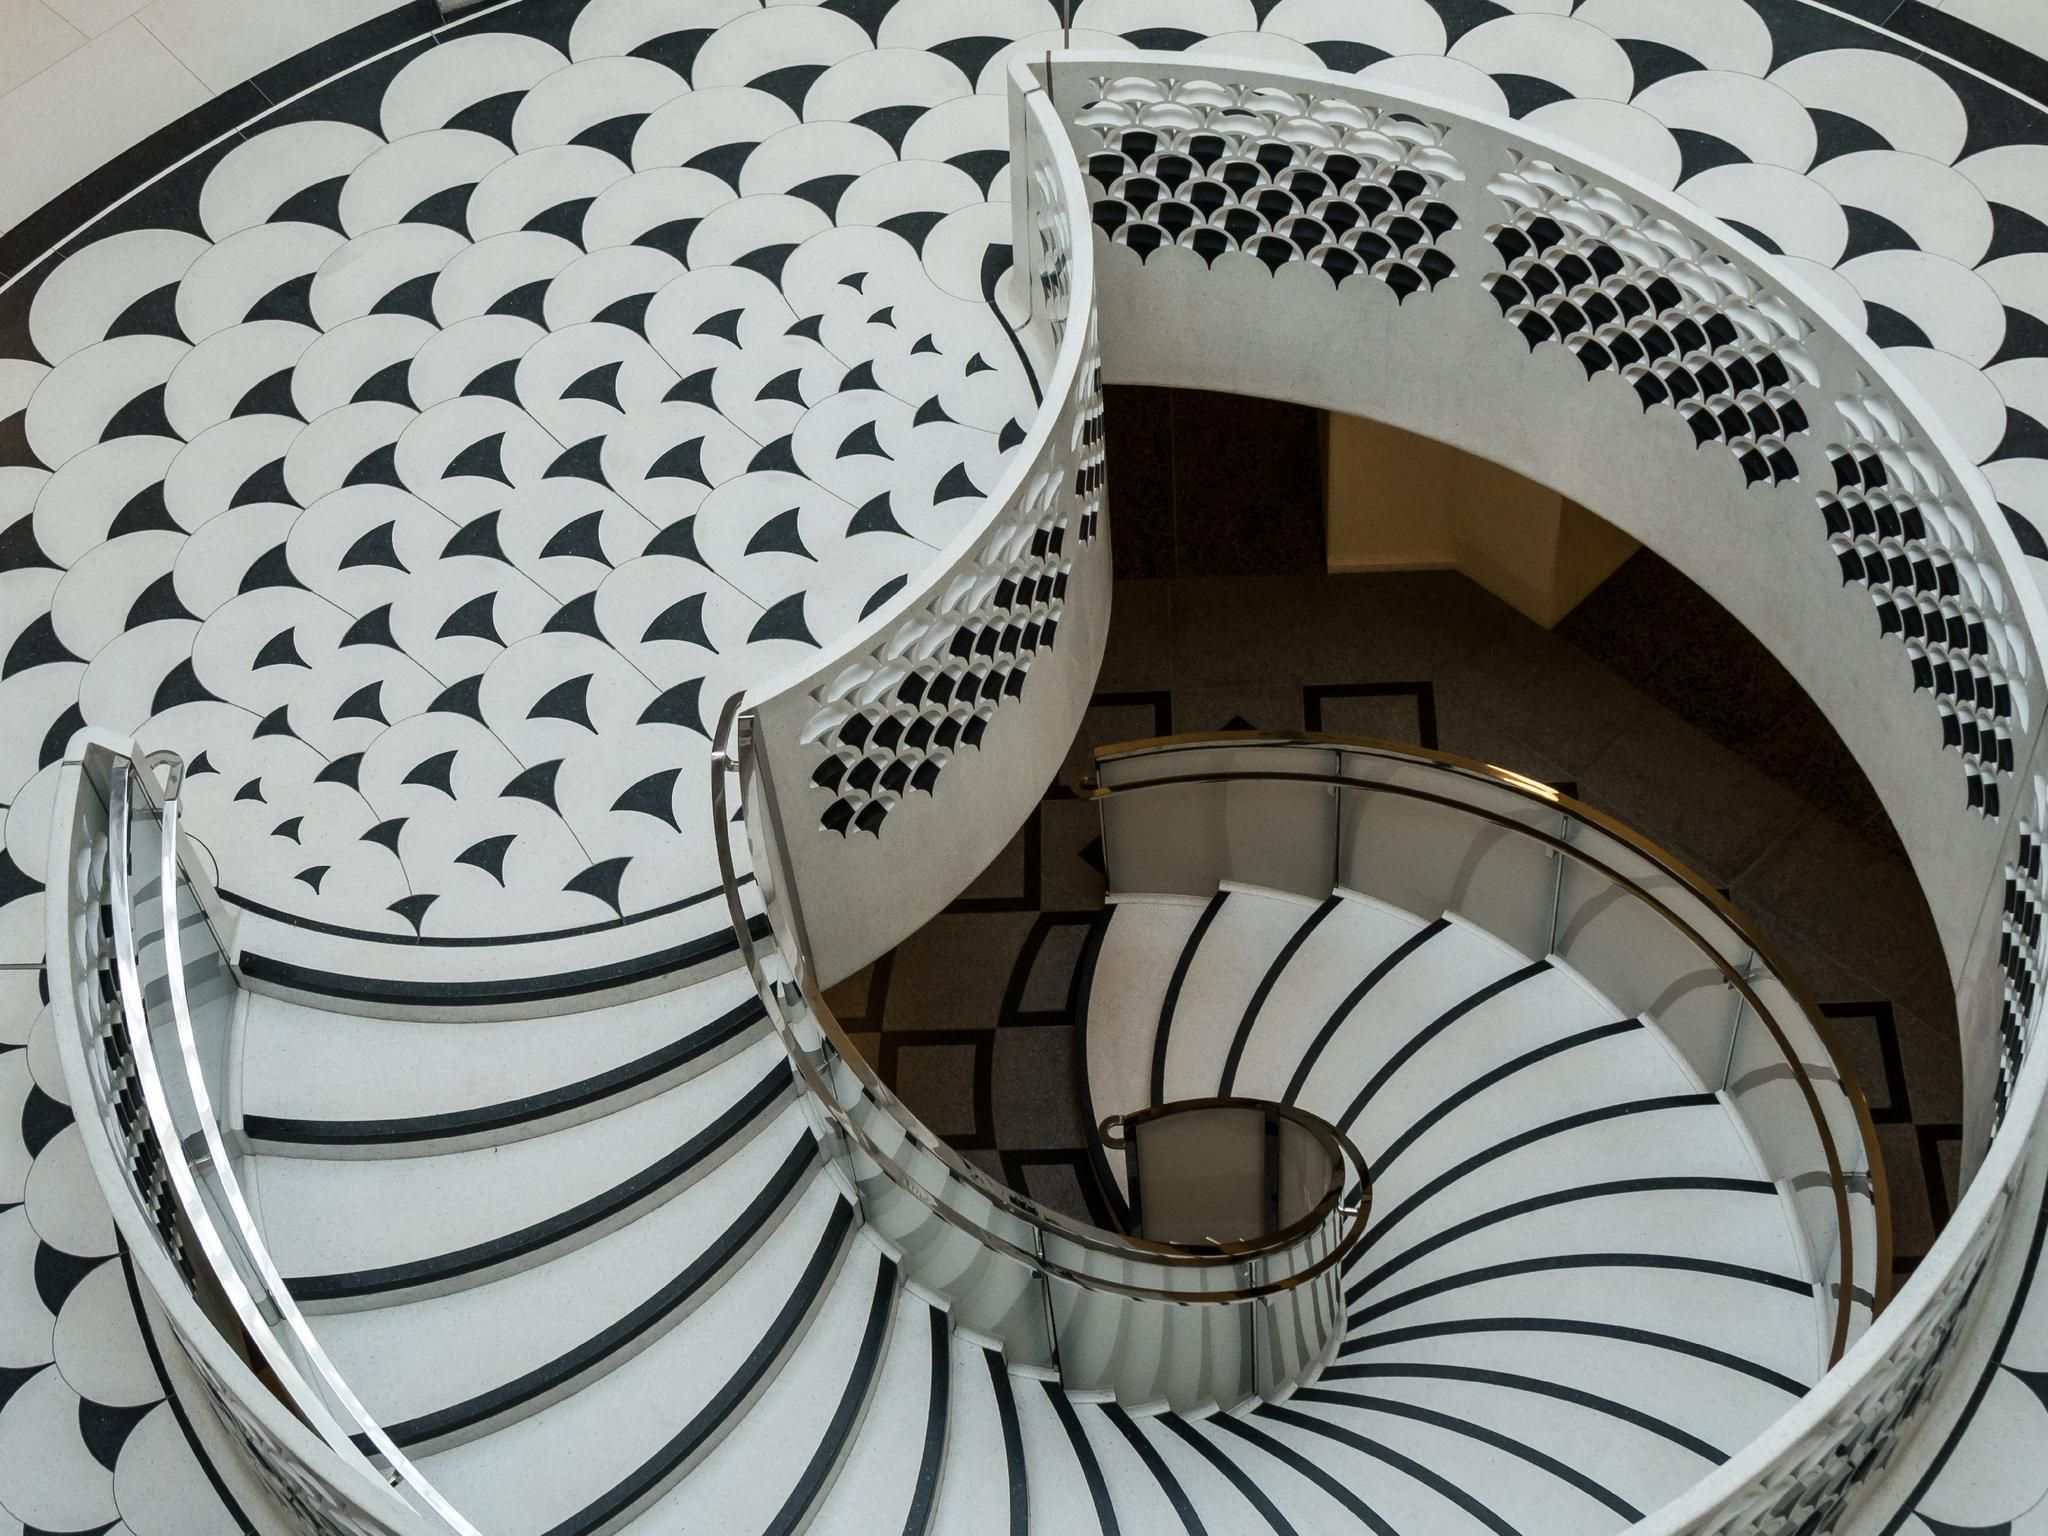 Terrazzo supplied by Agglotech to stunning effect at the Award winning Tate Britain